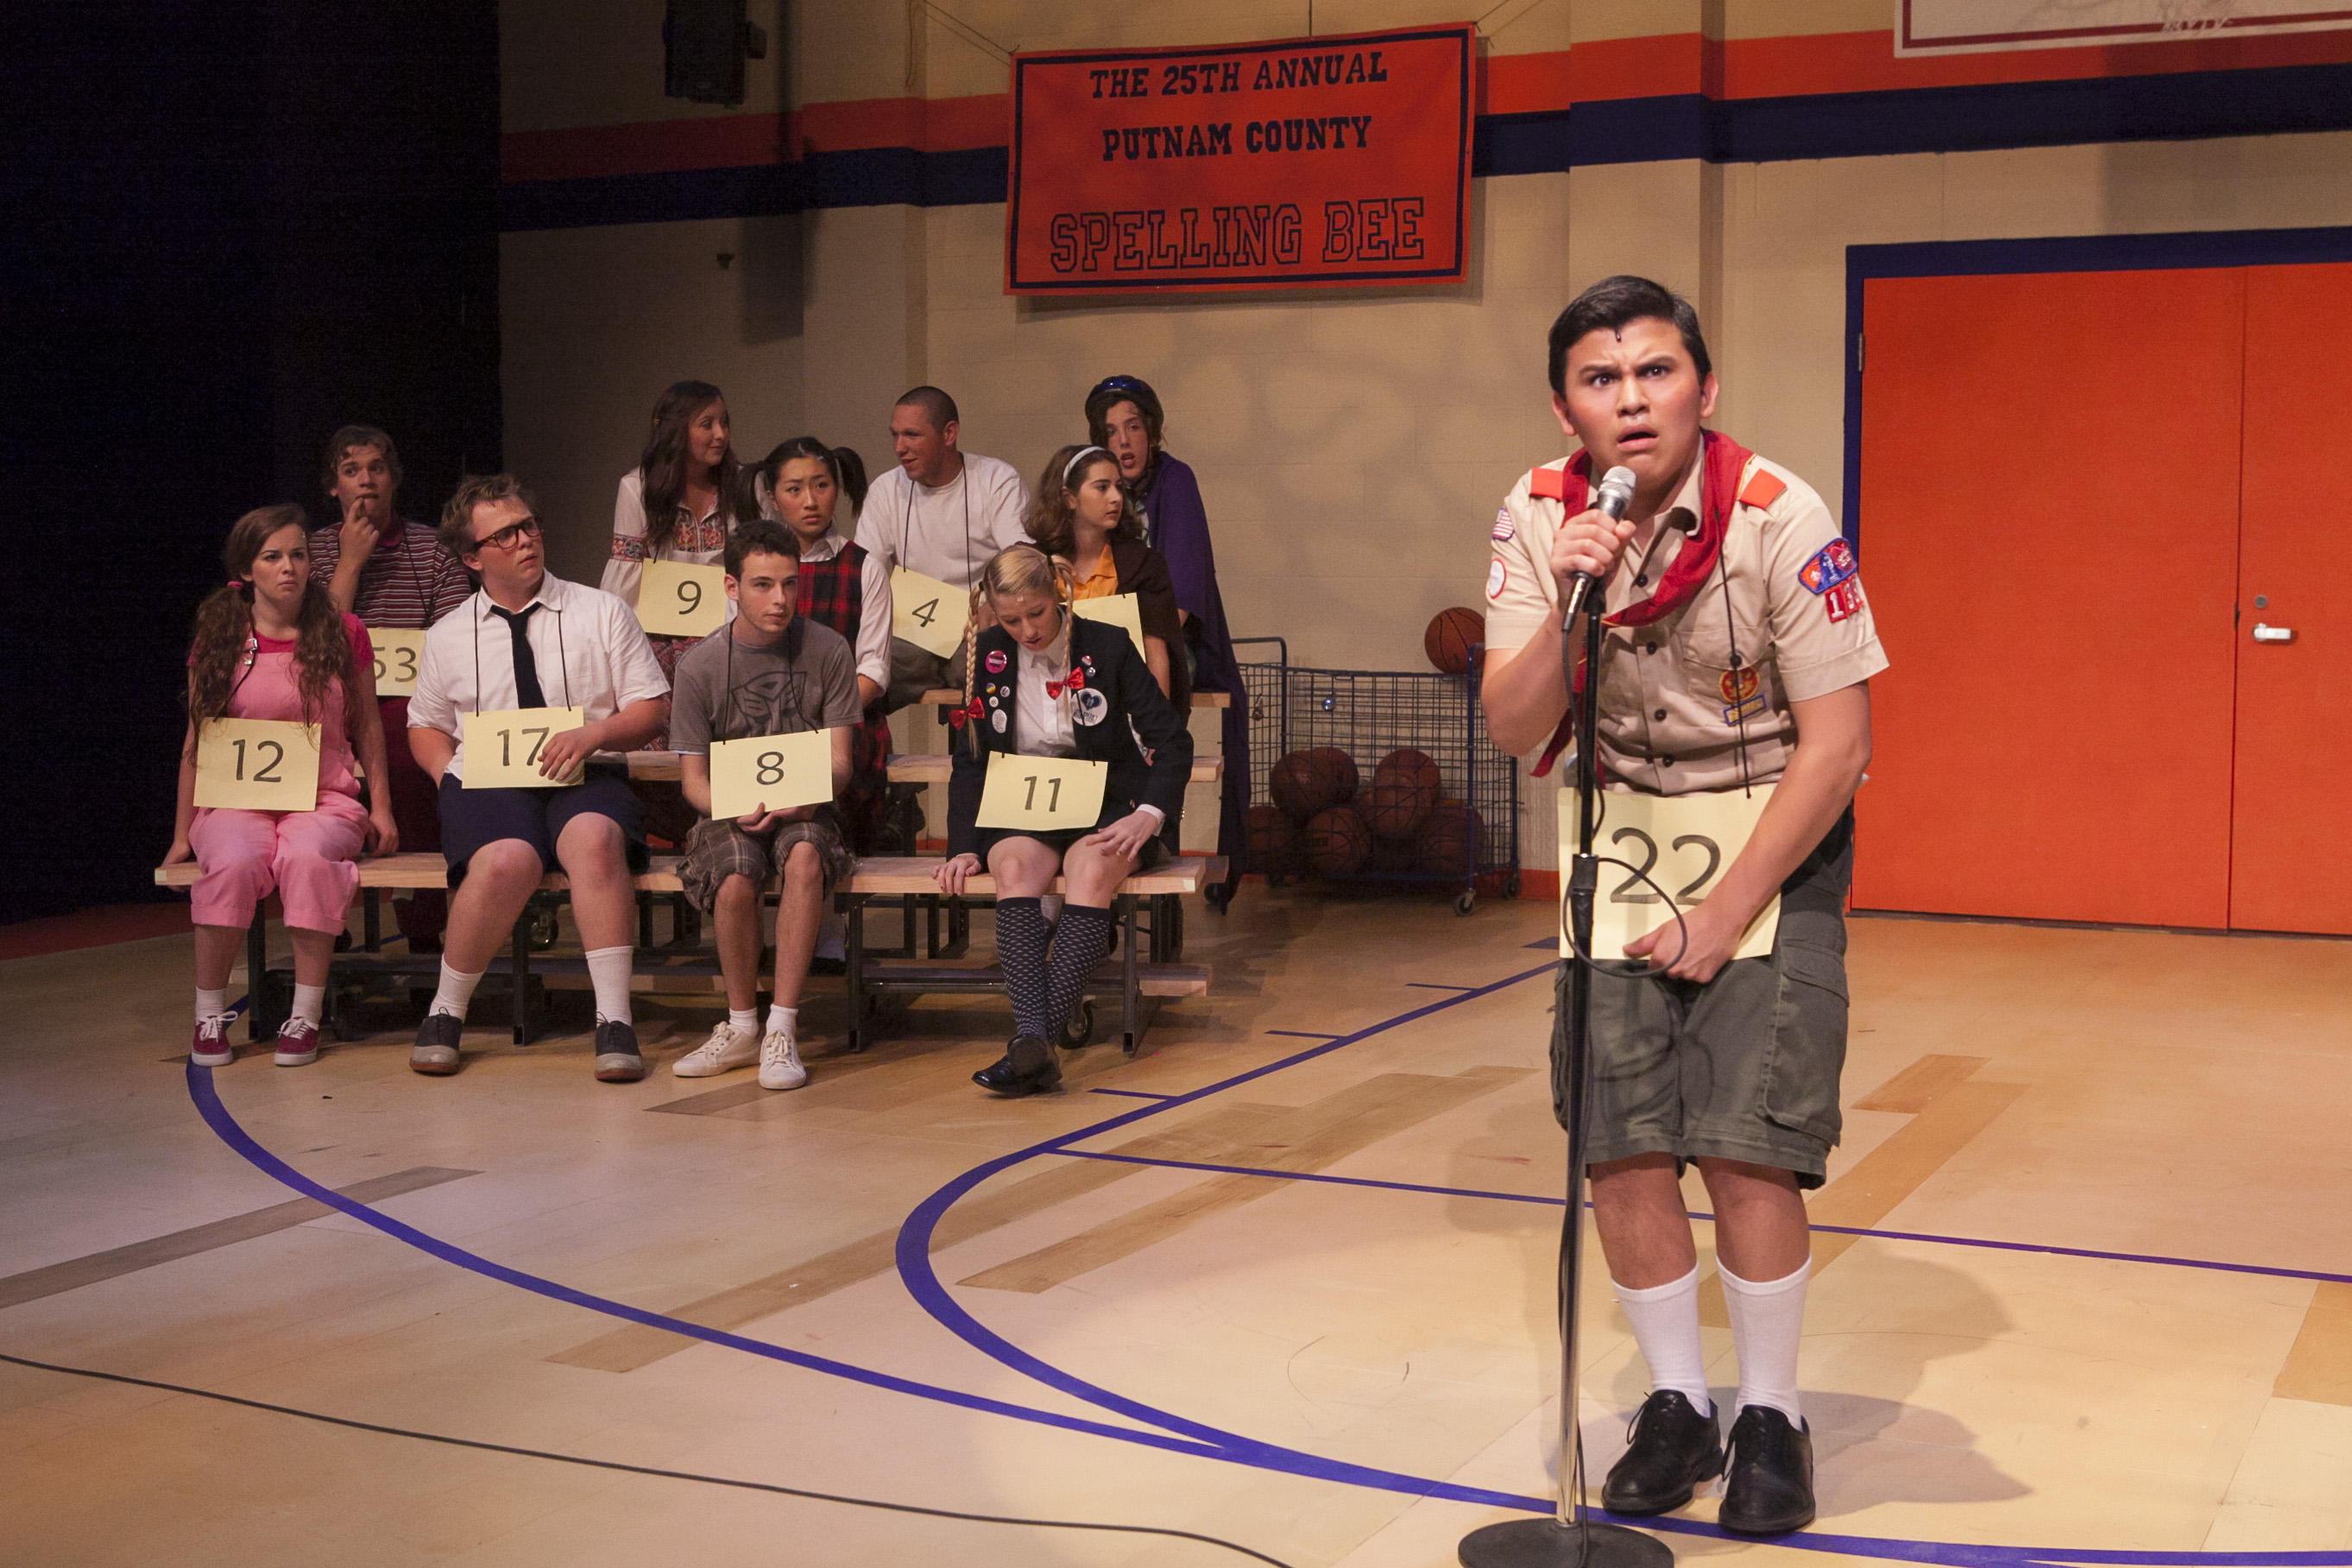 25th Annual Putnam...Spelling Bee